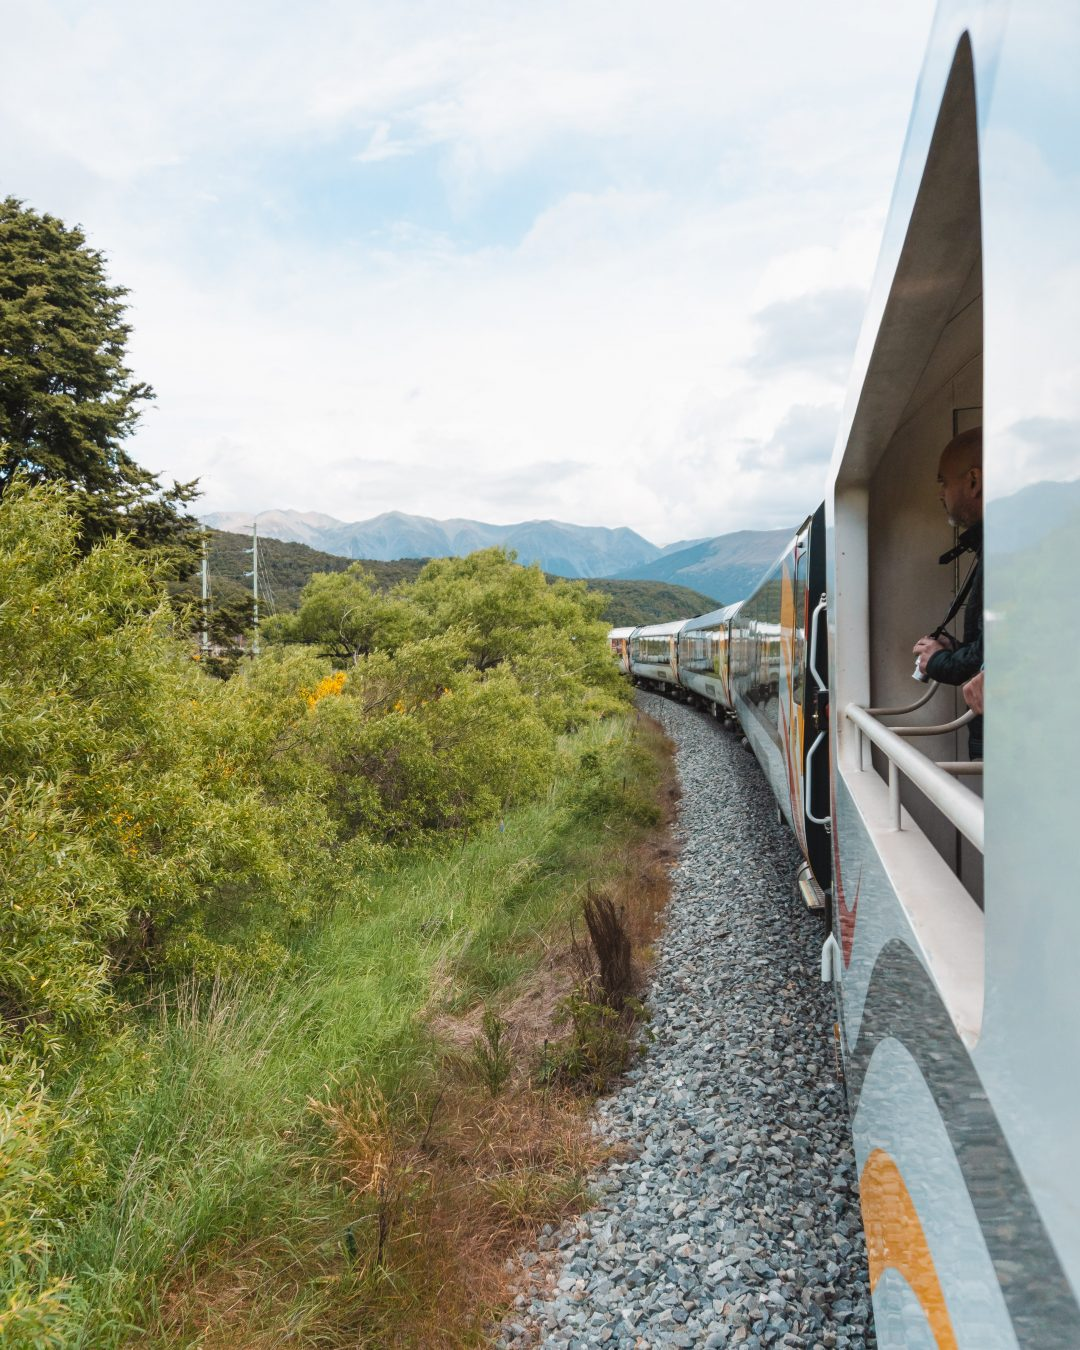 One of the most scenic train rides in the world is the TranzAlpine across New Zealand's South Island